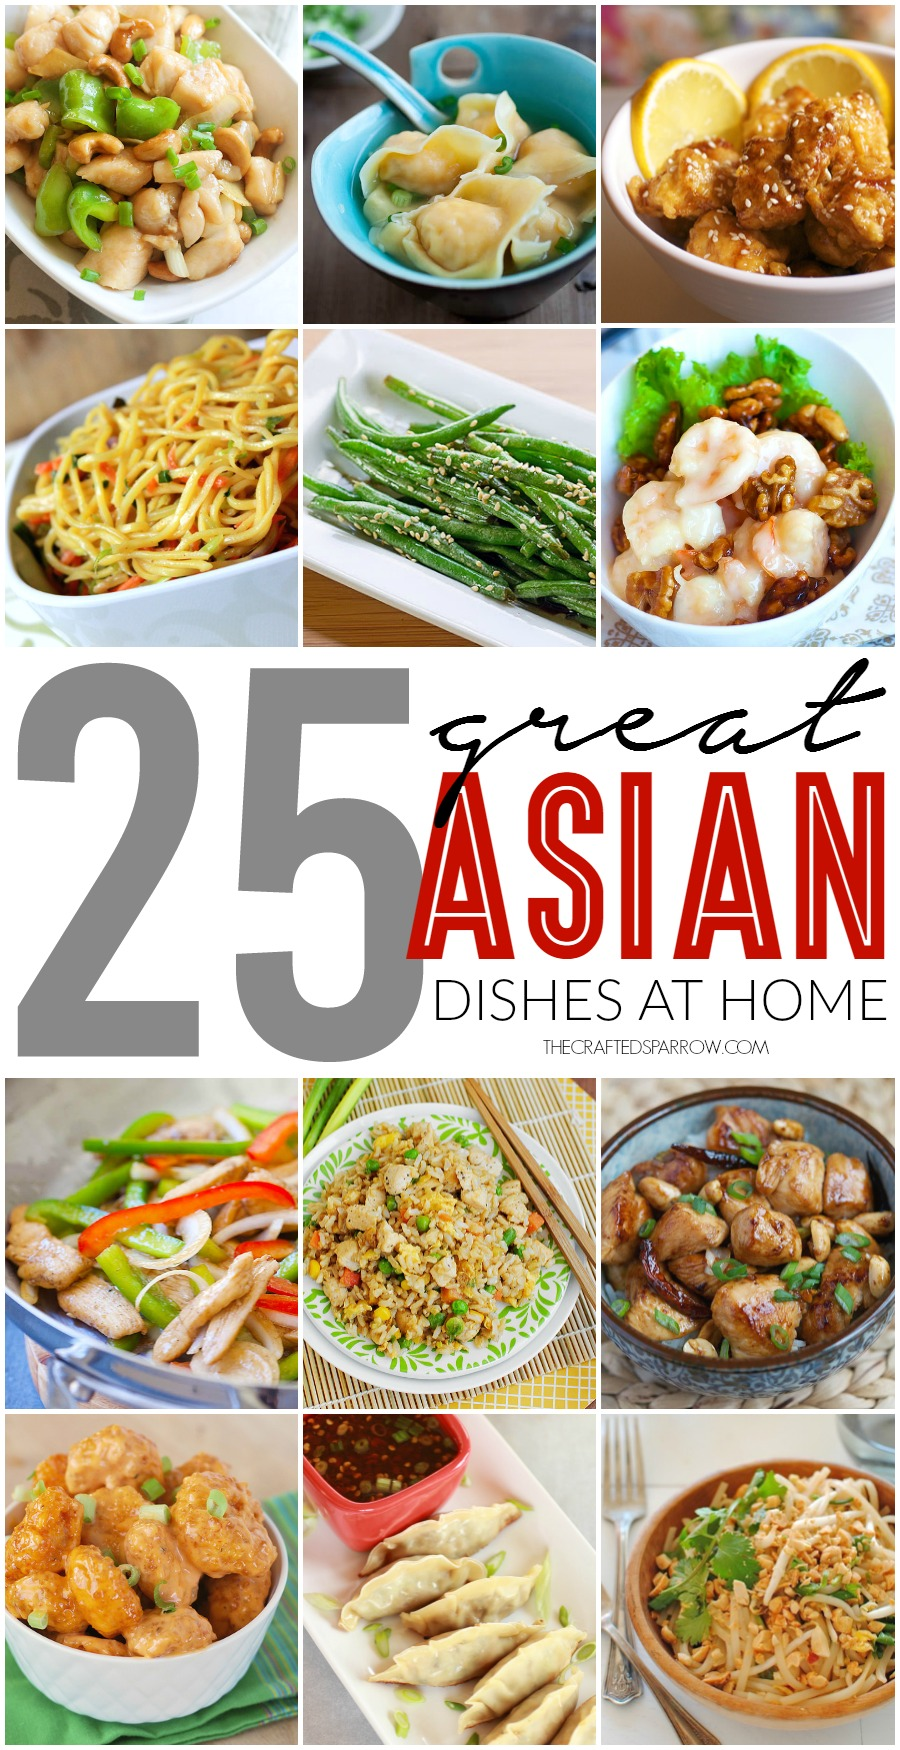 25 Great Asian Dishes at Home